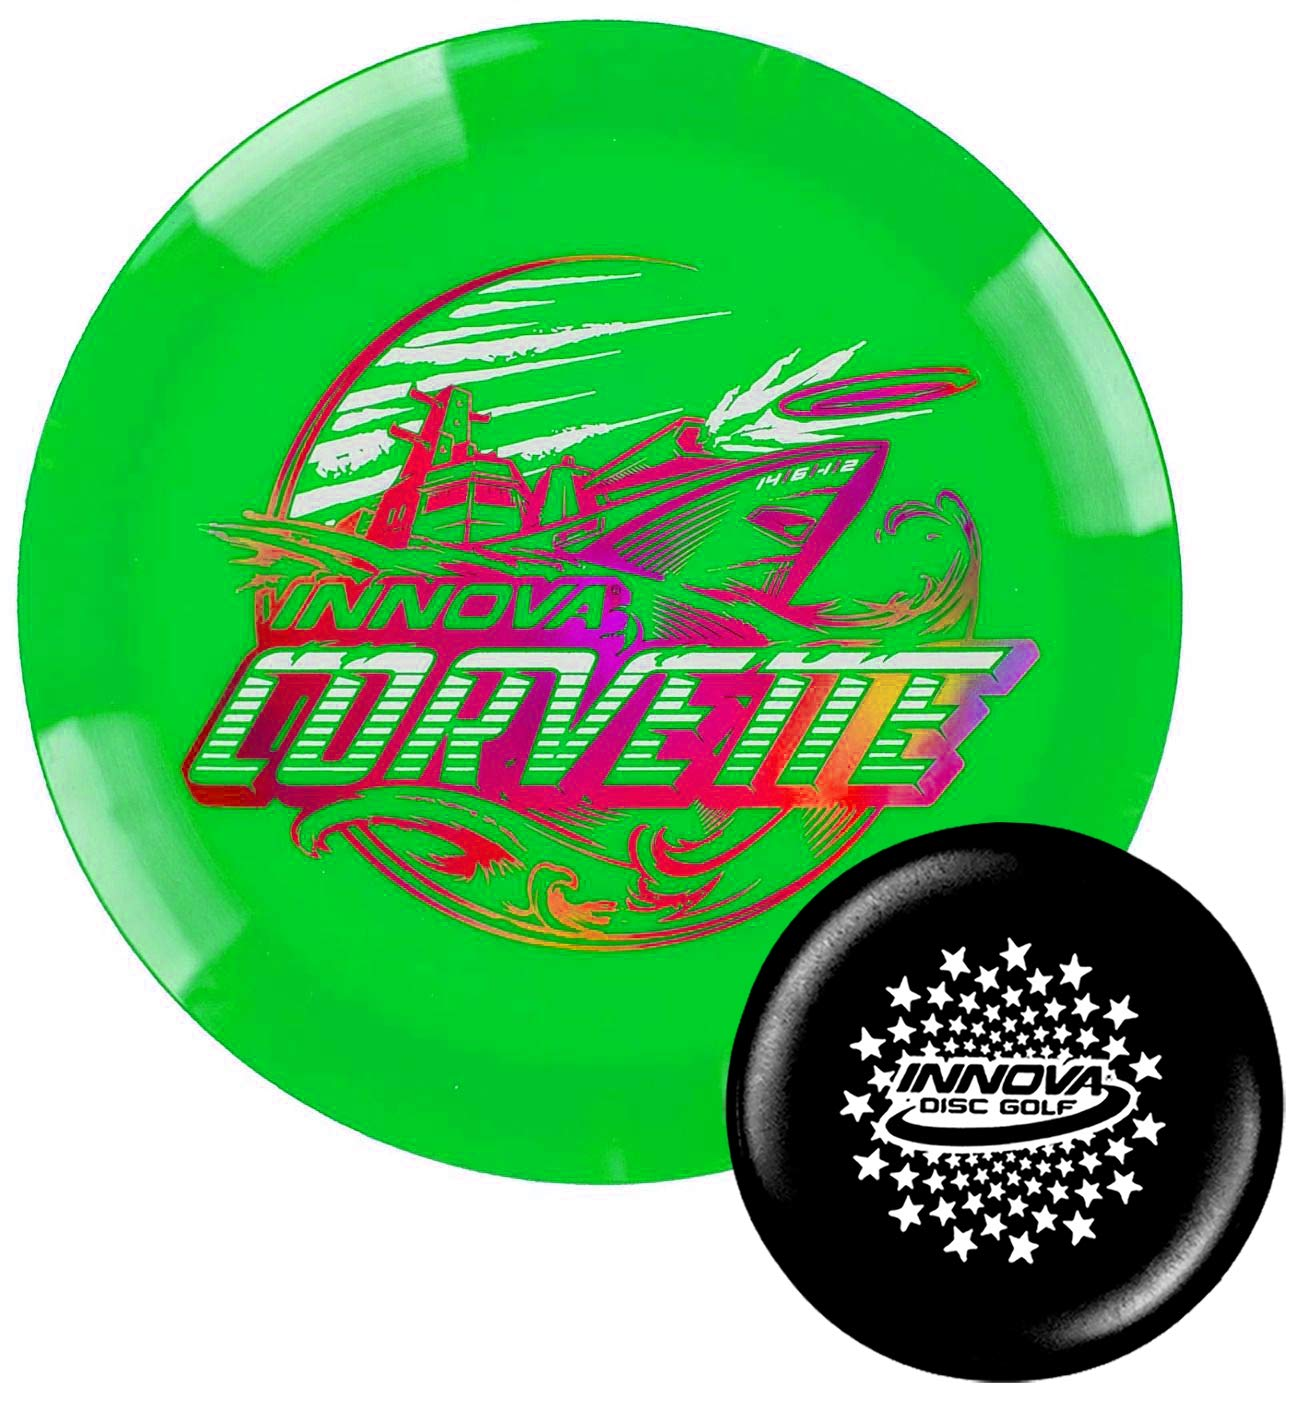 Innova Discs Golf XXL Star Corvette Disc Golf Driver Special Edition with Limited Edition Stars Stamped Innova Mini - Colors Will Vary (170-172g) by Innova Discs